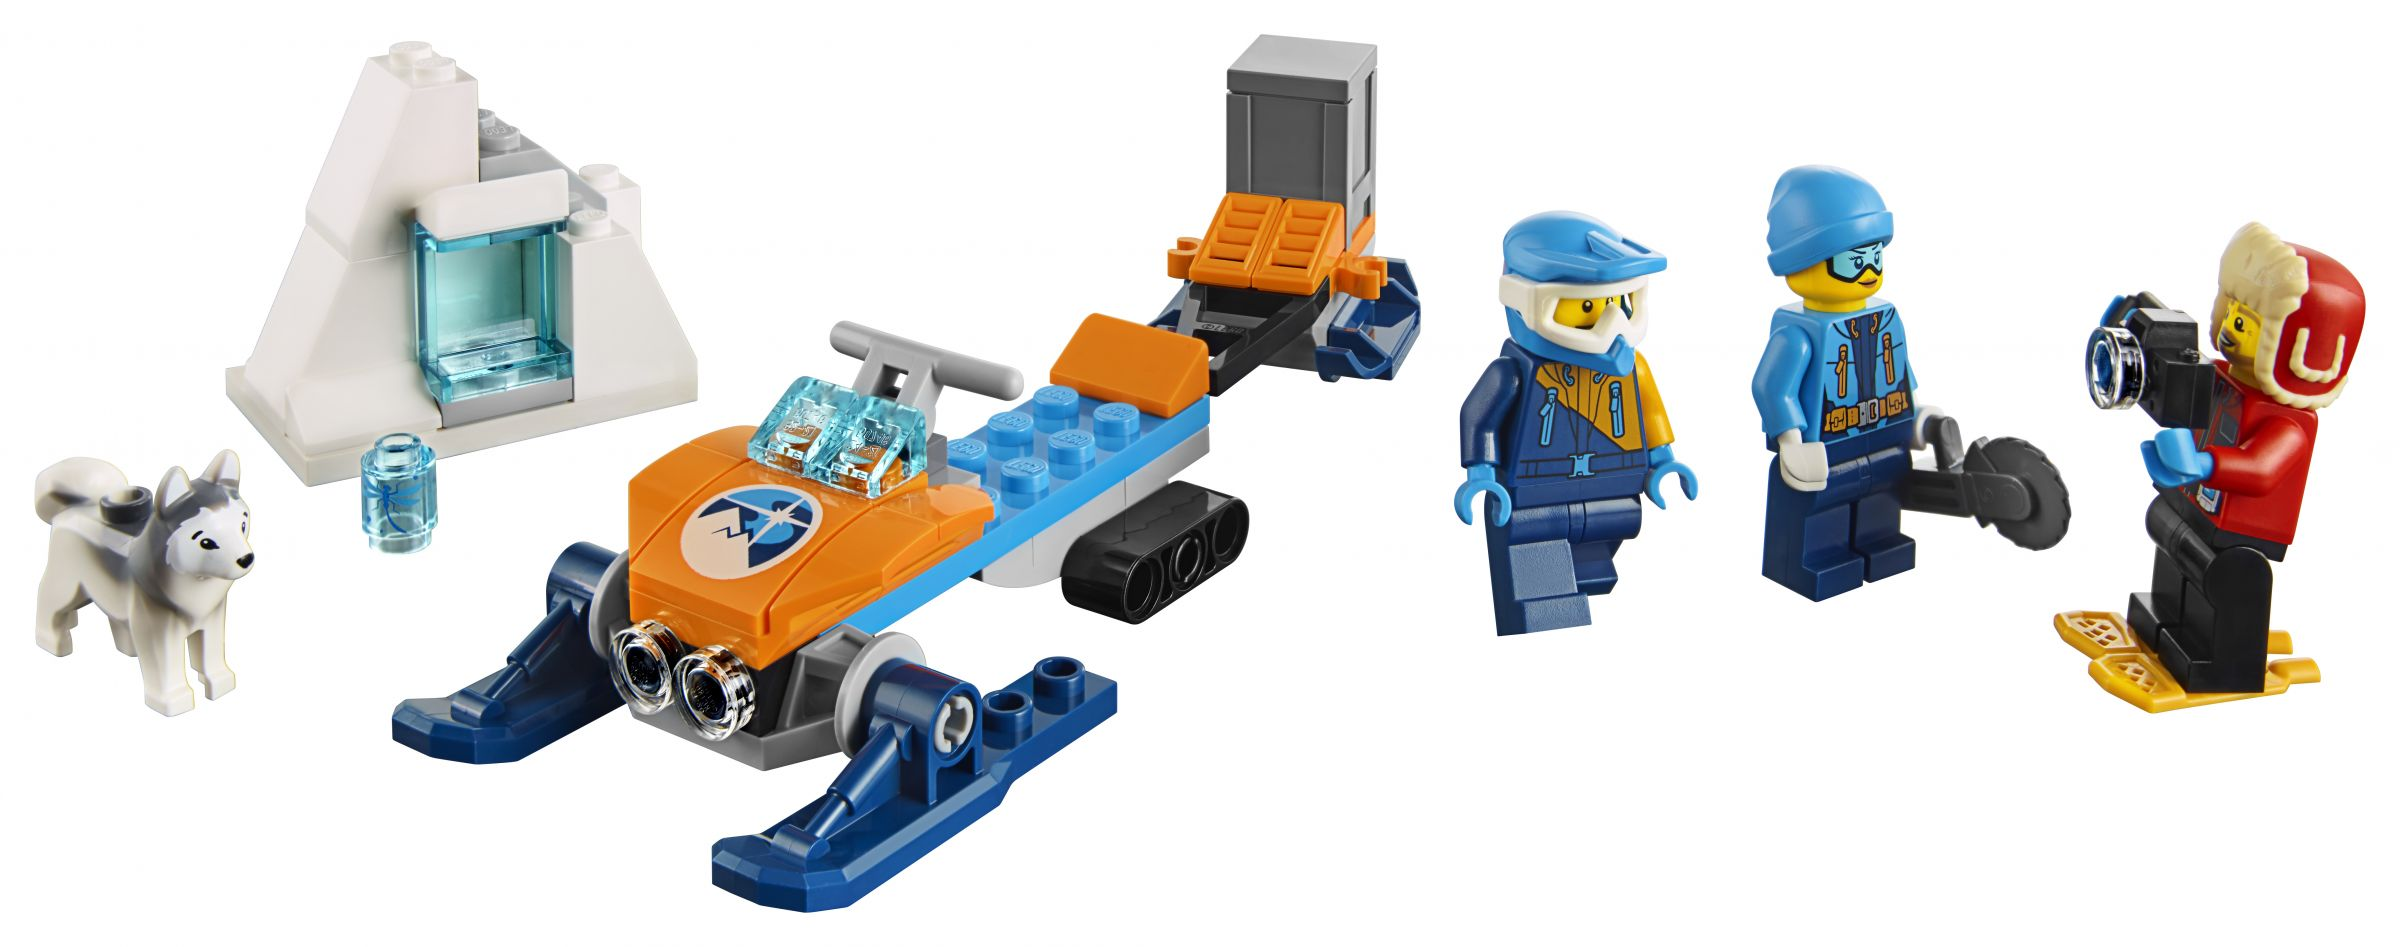 LEGO City 60191 Arktis-Expeditionsteam